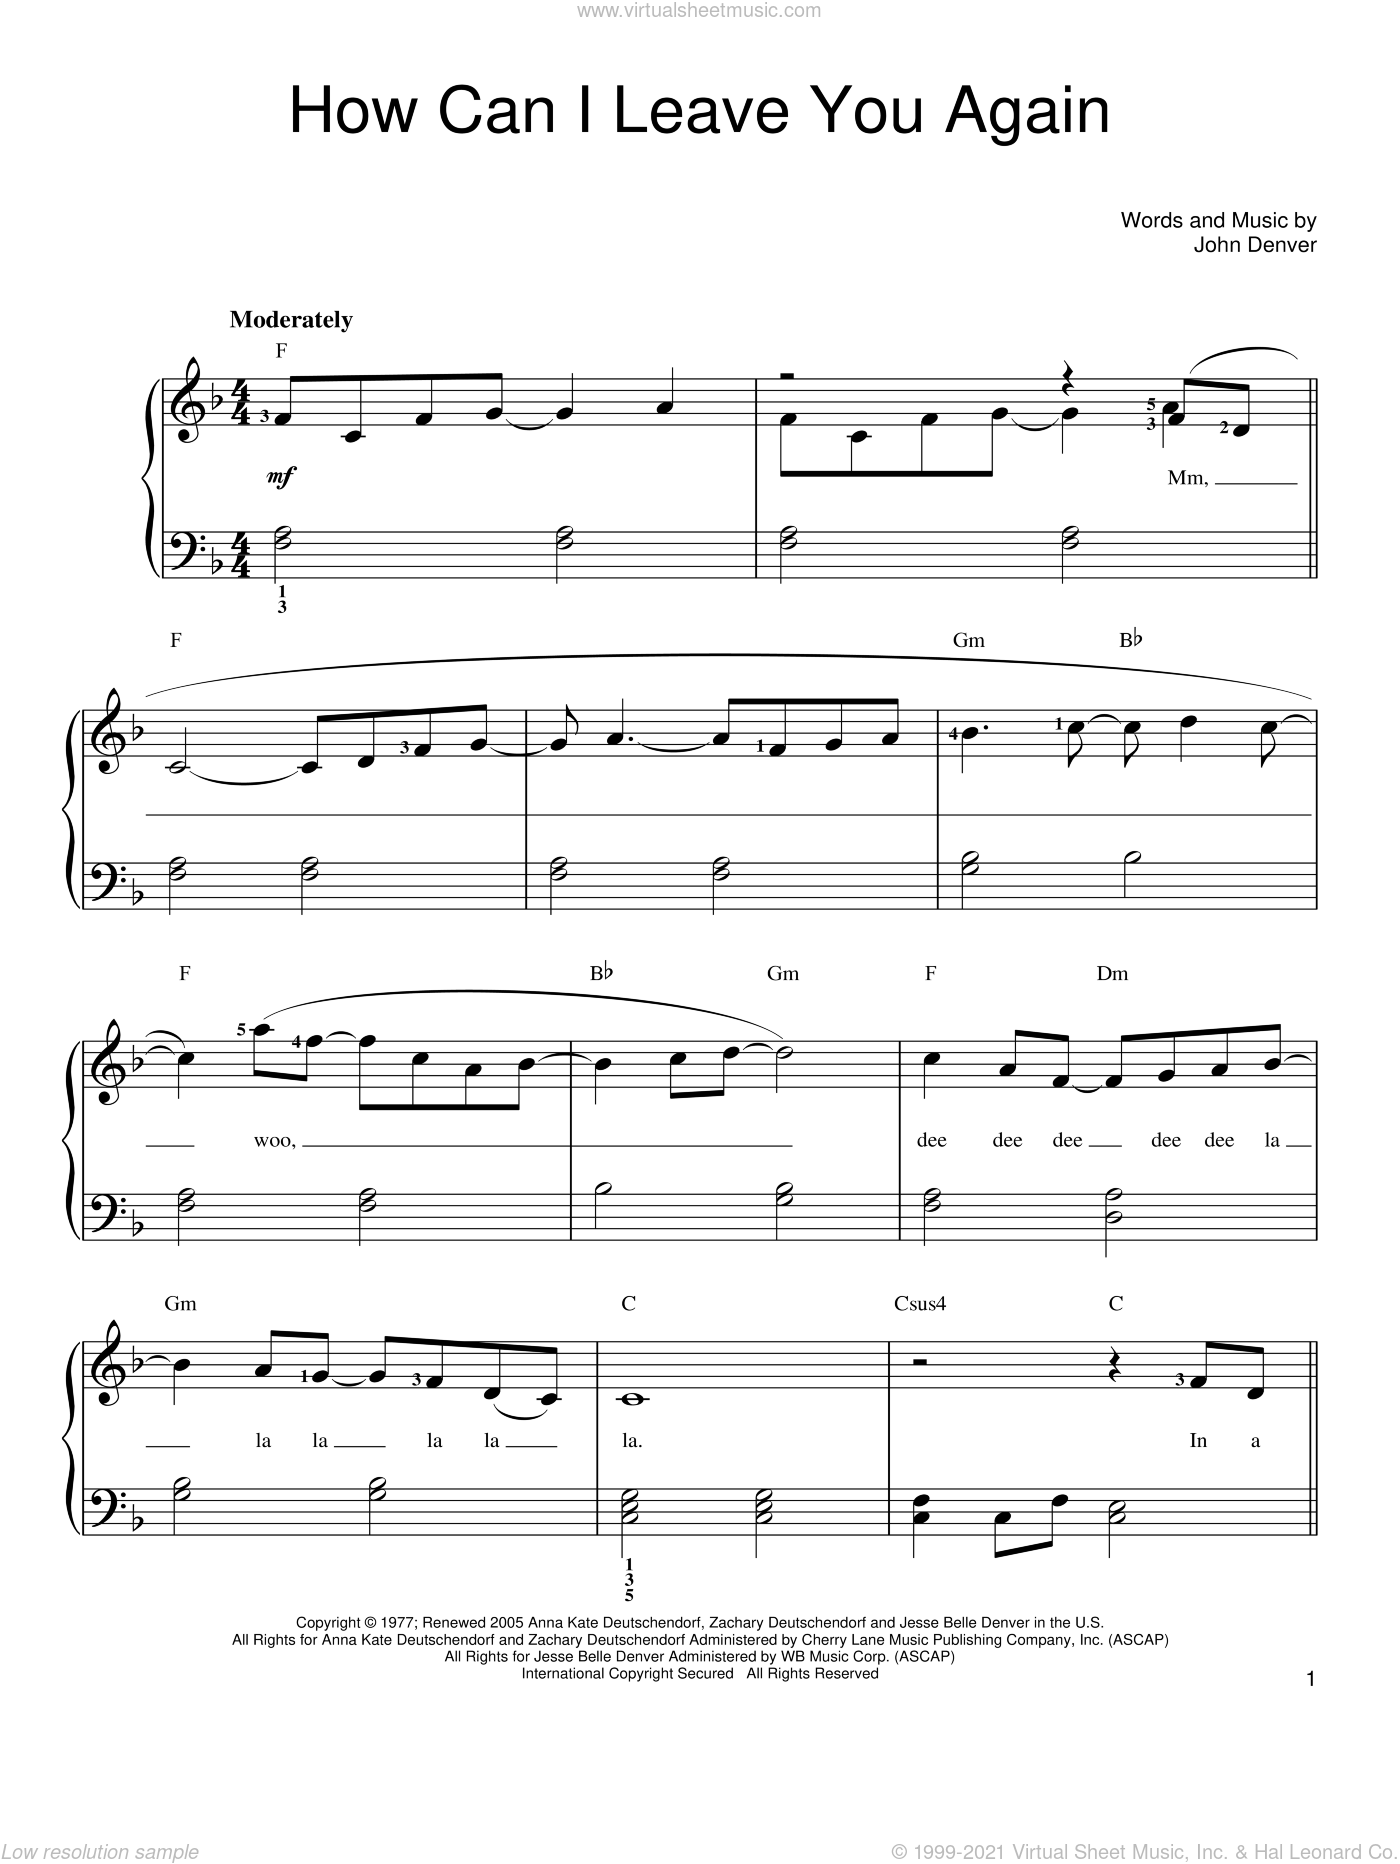 How Can I Leave You Again sheet music for piano solo by John Denver, easy skill level